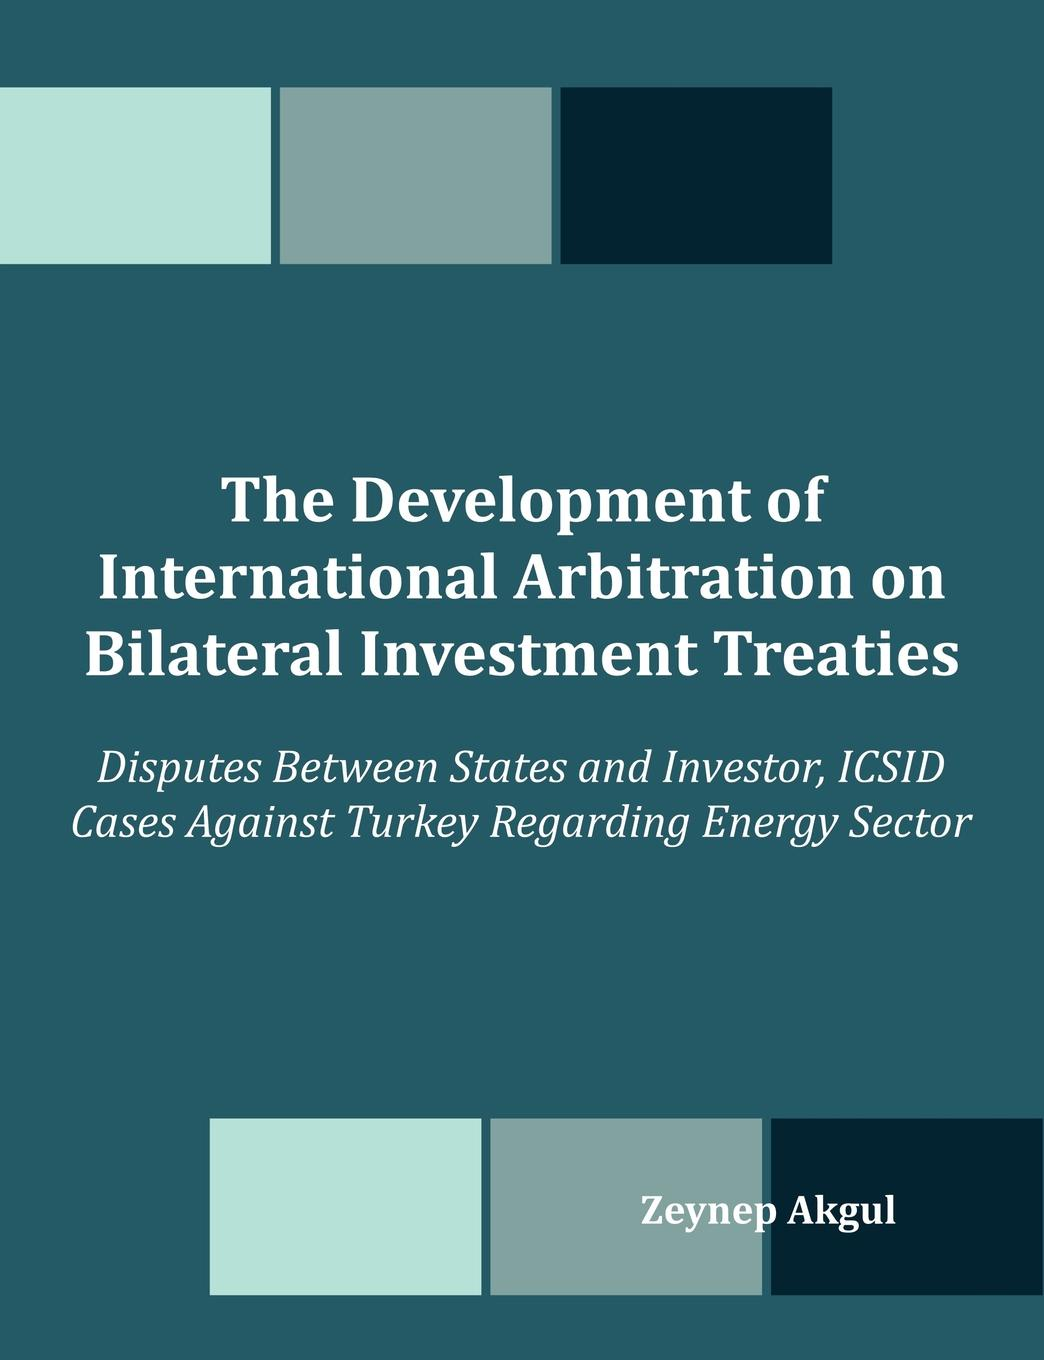 Zeynep Akgul The Development of International Arbitration on Bilateral Investment Treaties. Disputes Between States and Investor, ICSID Cases Against Turkey Regard louis straney l investor s guide to loss recovery rights mediation arbitration and other strategies